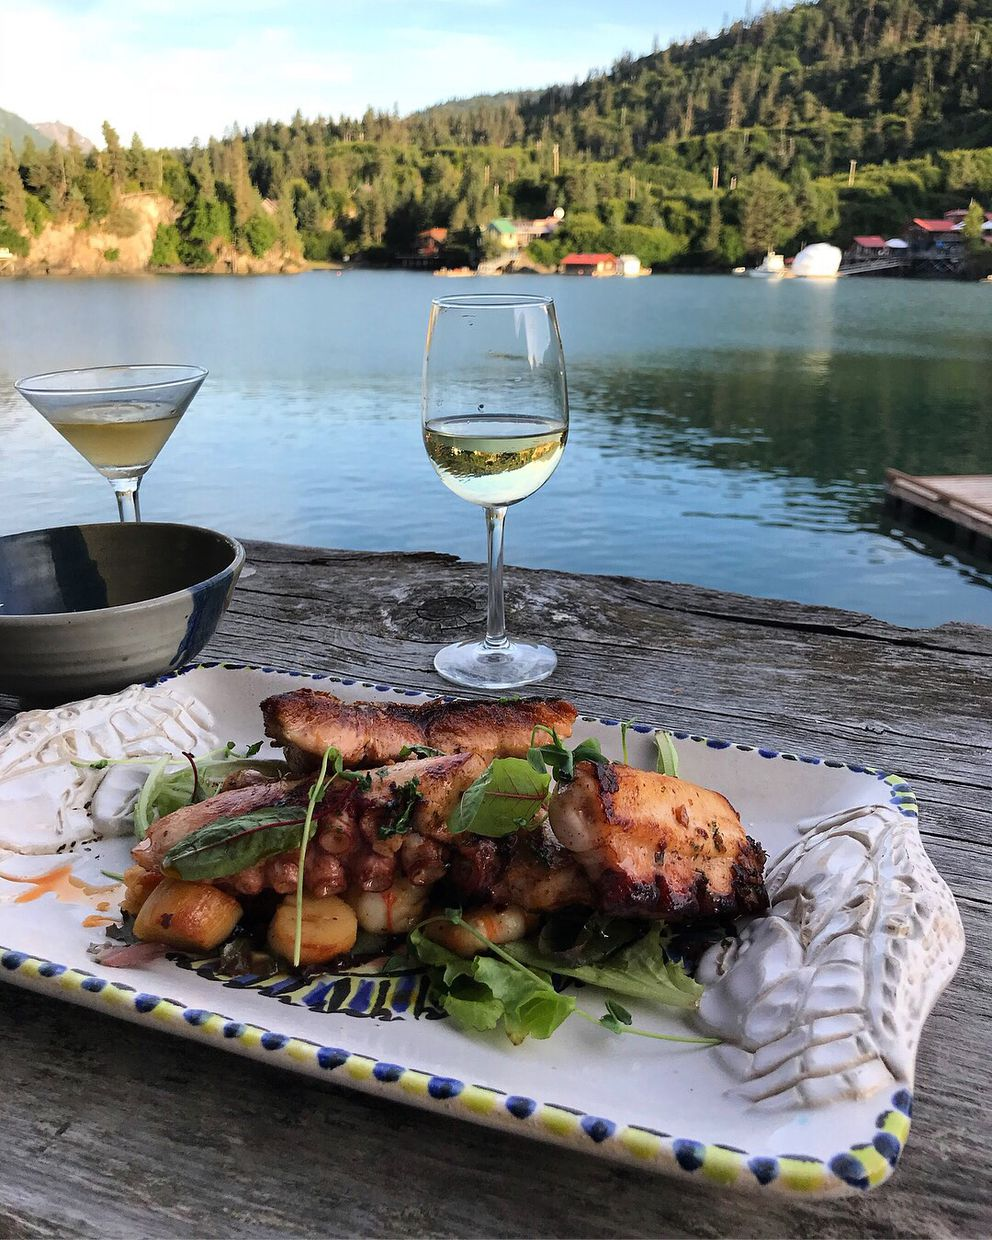 An off-menu Alaska seafood mixed protein plate at The Saltry in Halibut Cove, with octopus, king salmon, scallops, side stripe shrimp and a side of mussels. August 4, 2018. (Photo by Maya Wilson)